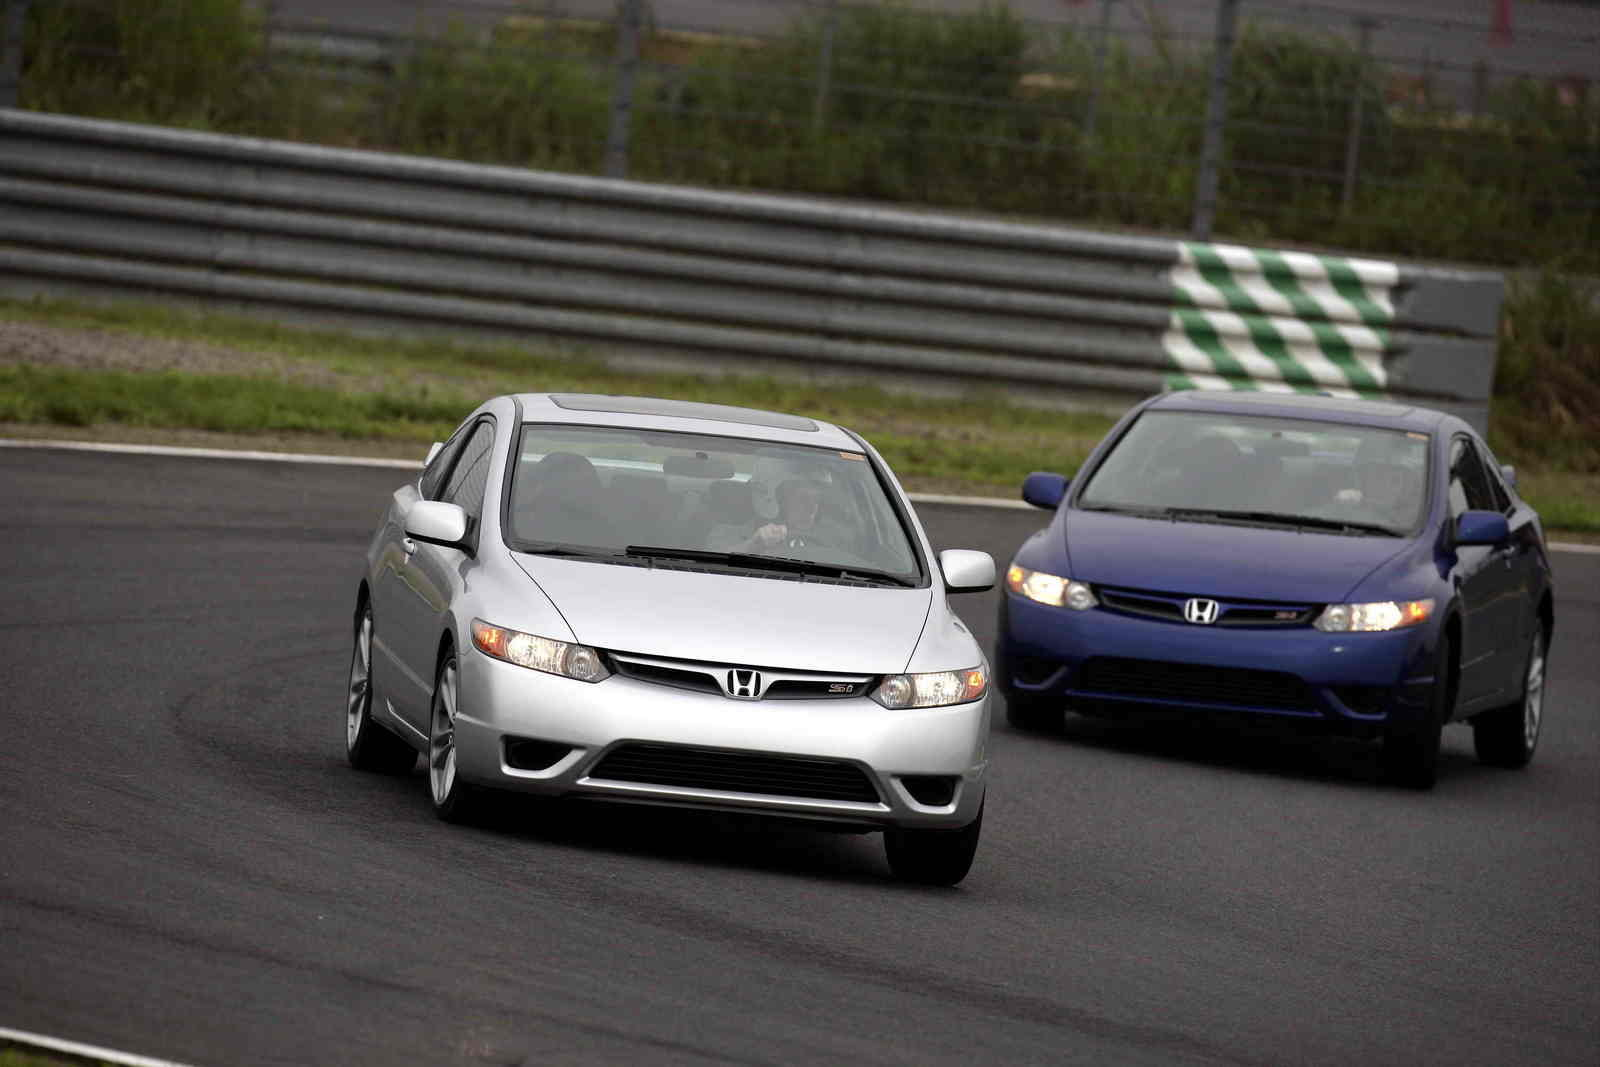 Maxresdefault as well D Honda Civic Ex Coupe Jdm Silver Speed Img besides Hqdefault in addition Img moreover Sir. on 1998 honda civic